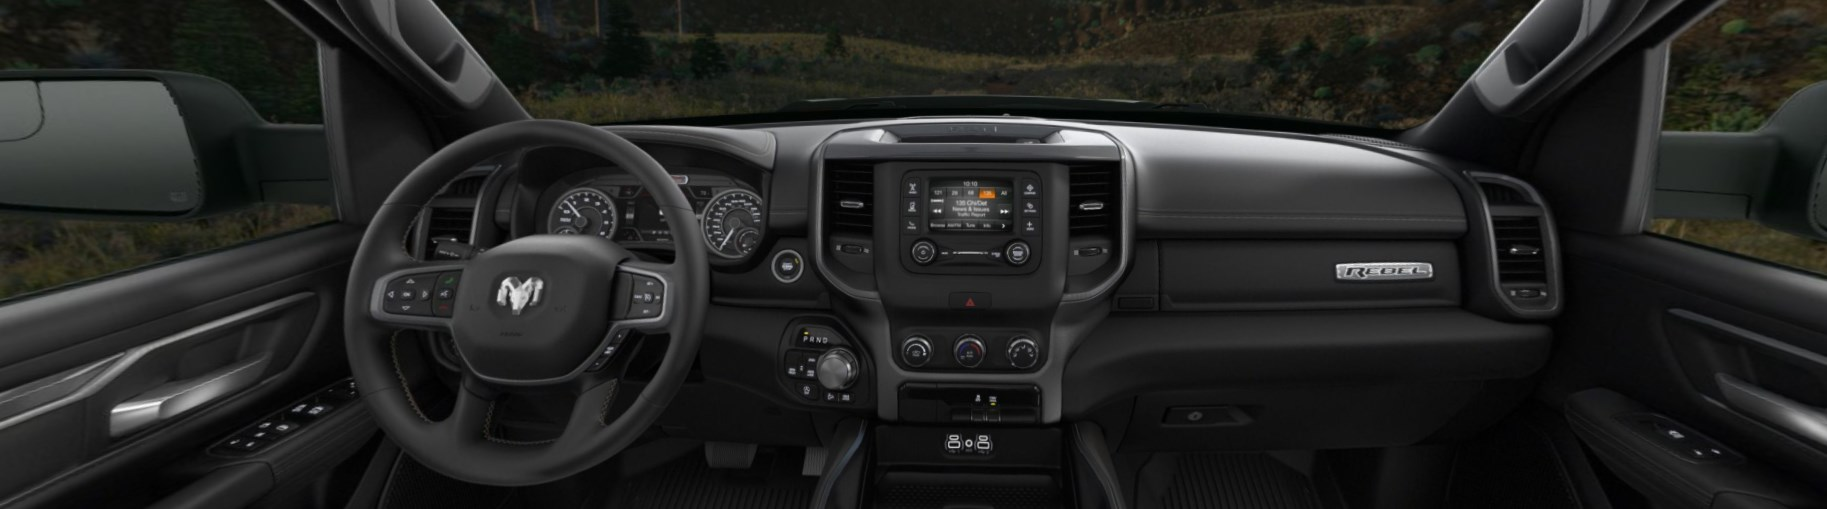 2020 Ram 1500 Rebel Front Interior Dashboard Picture